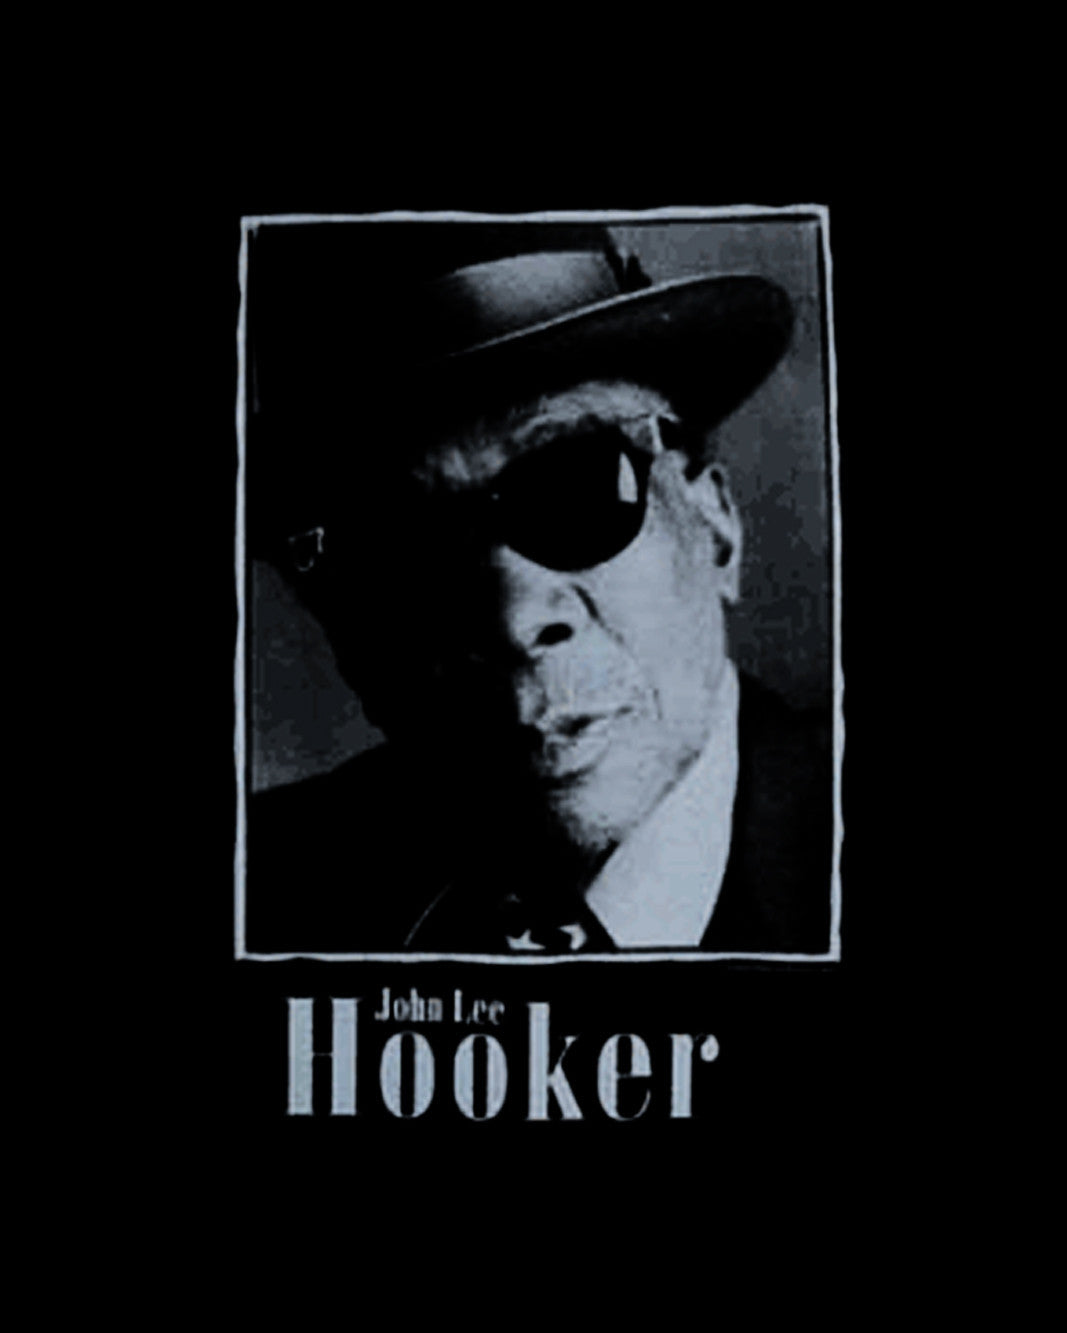 John Lee Hooker - Sunglasses T-Shirt (Men)